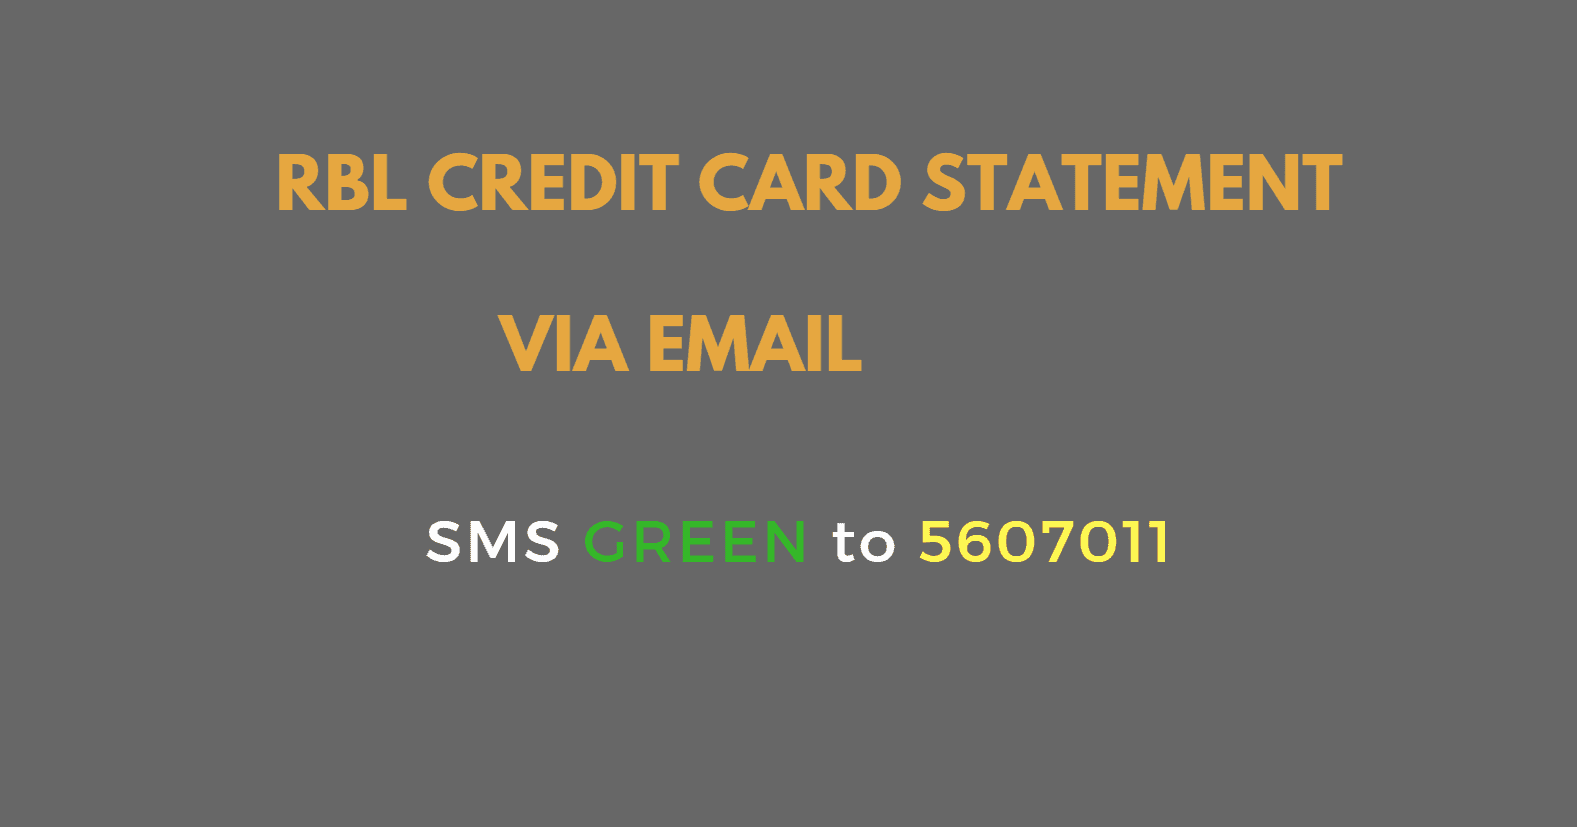 rbl bank credit card statement via email